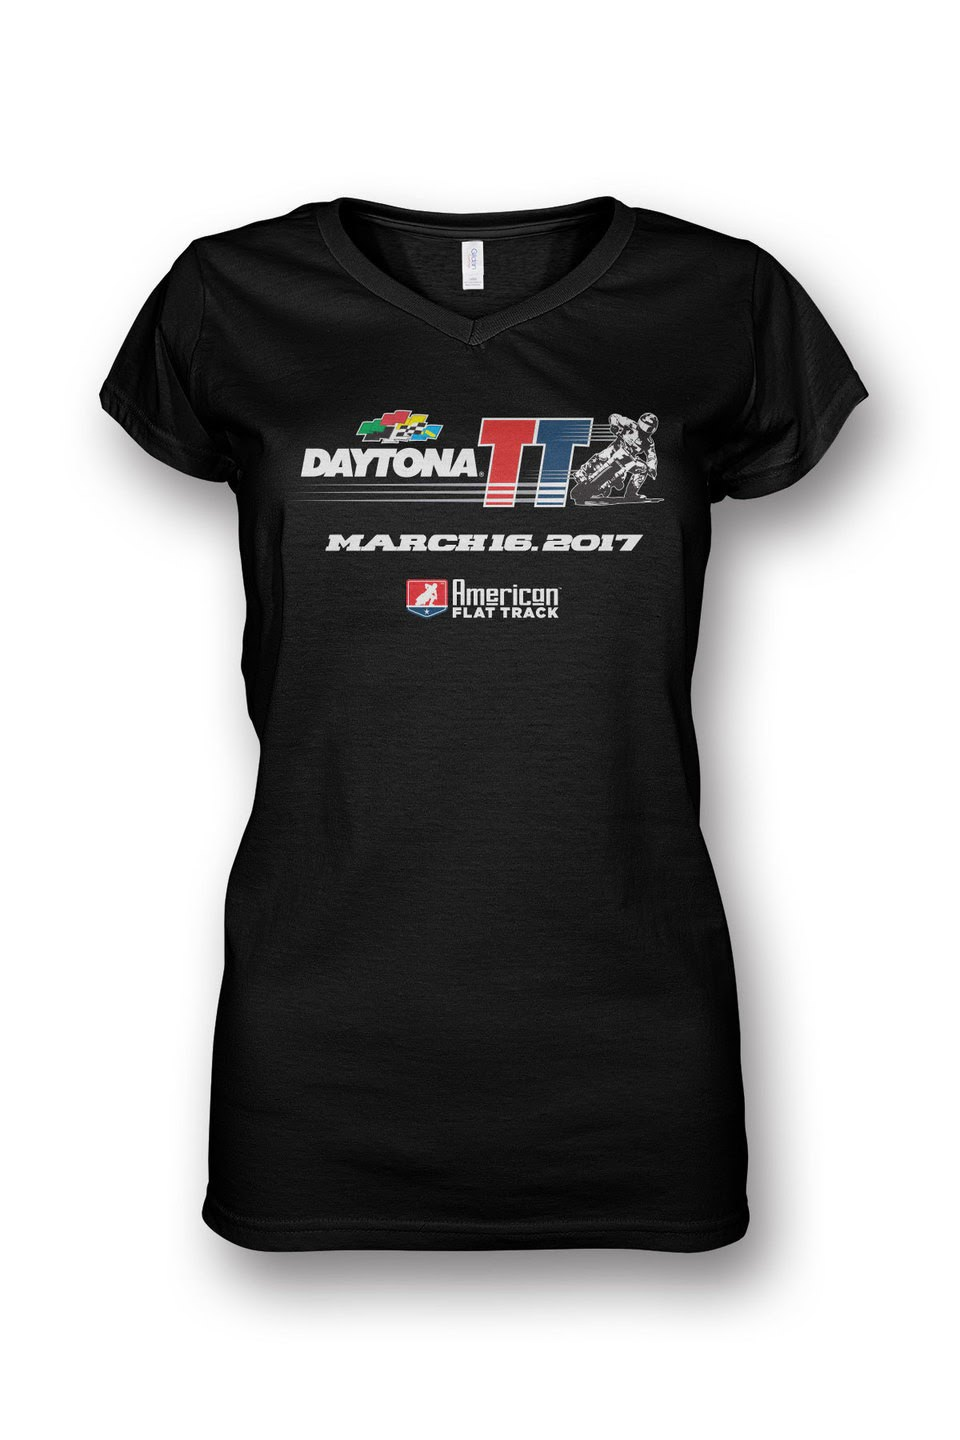 Event: 2017 Daytona - Women's V-Neck S/S Black